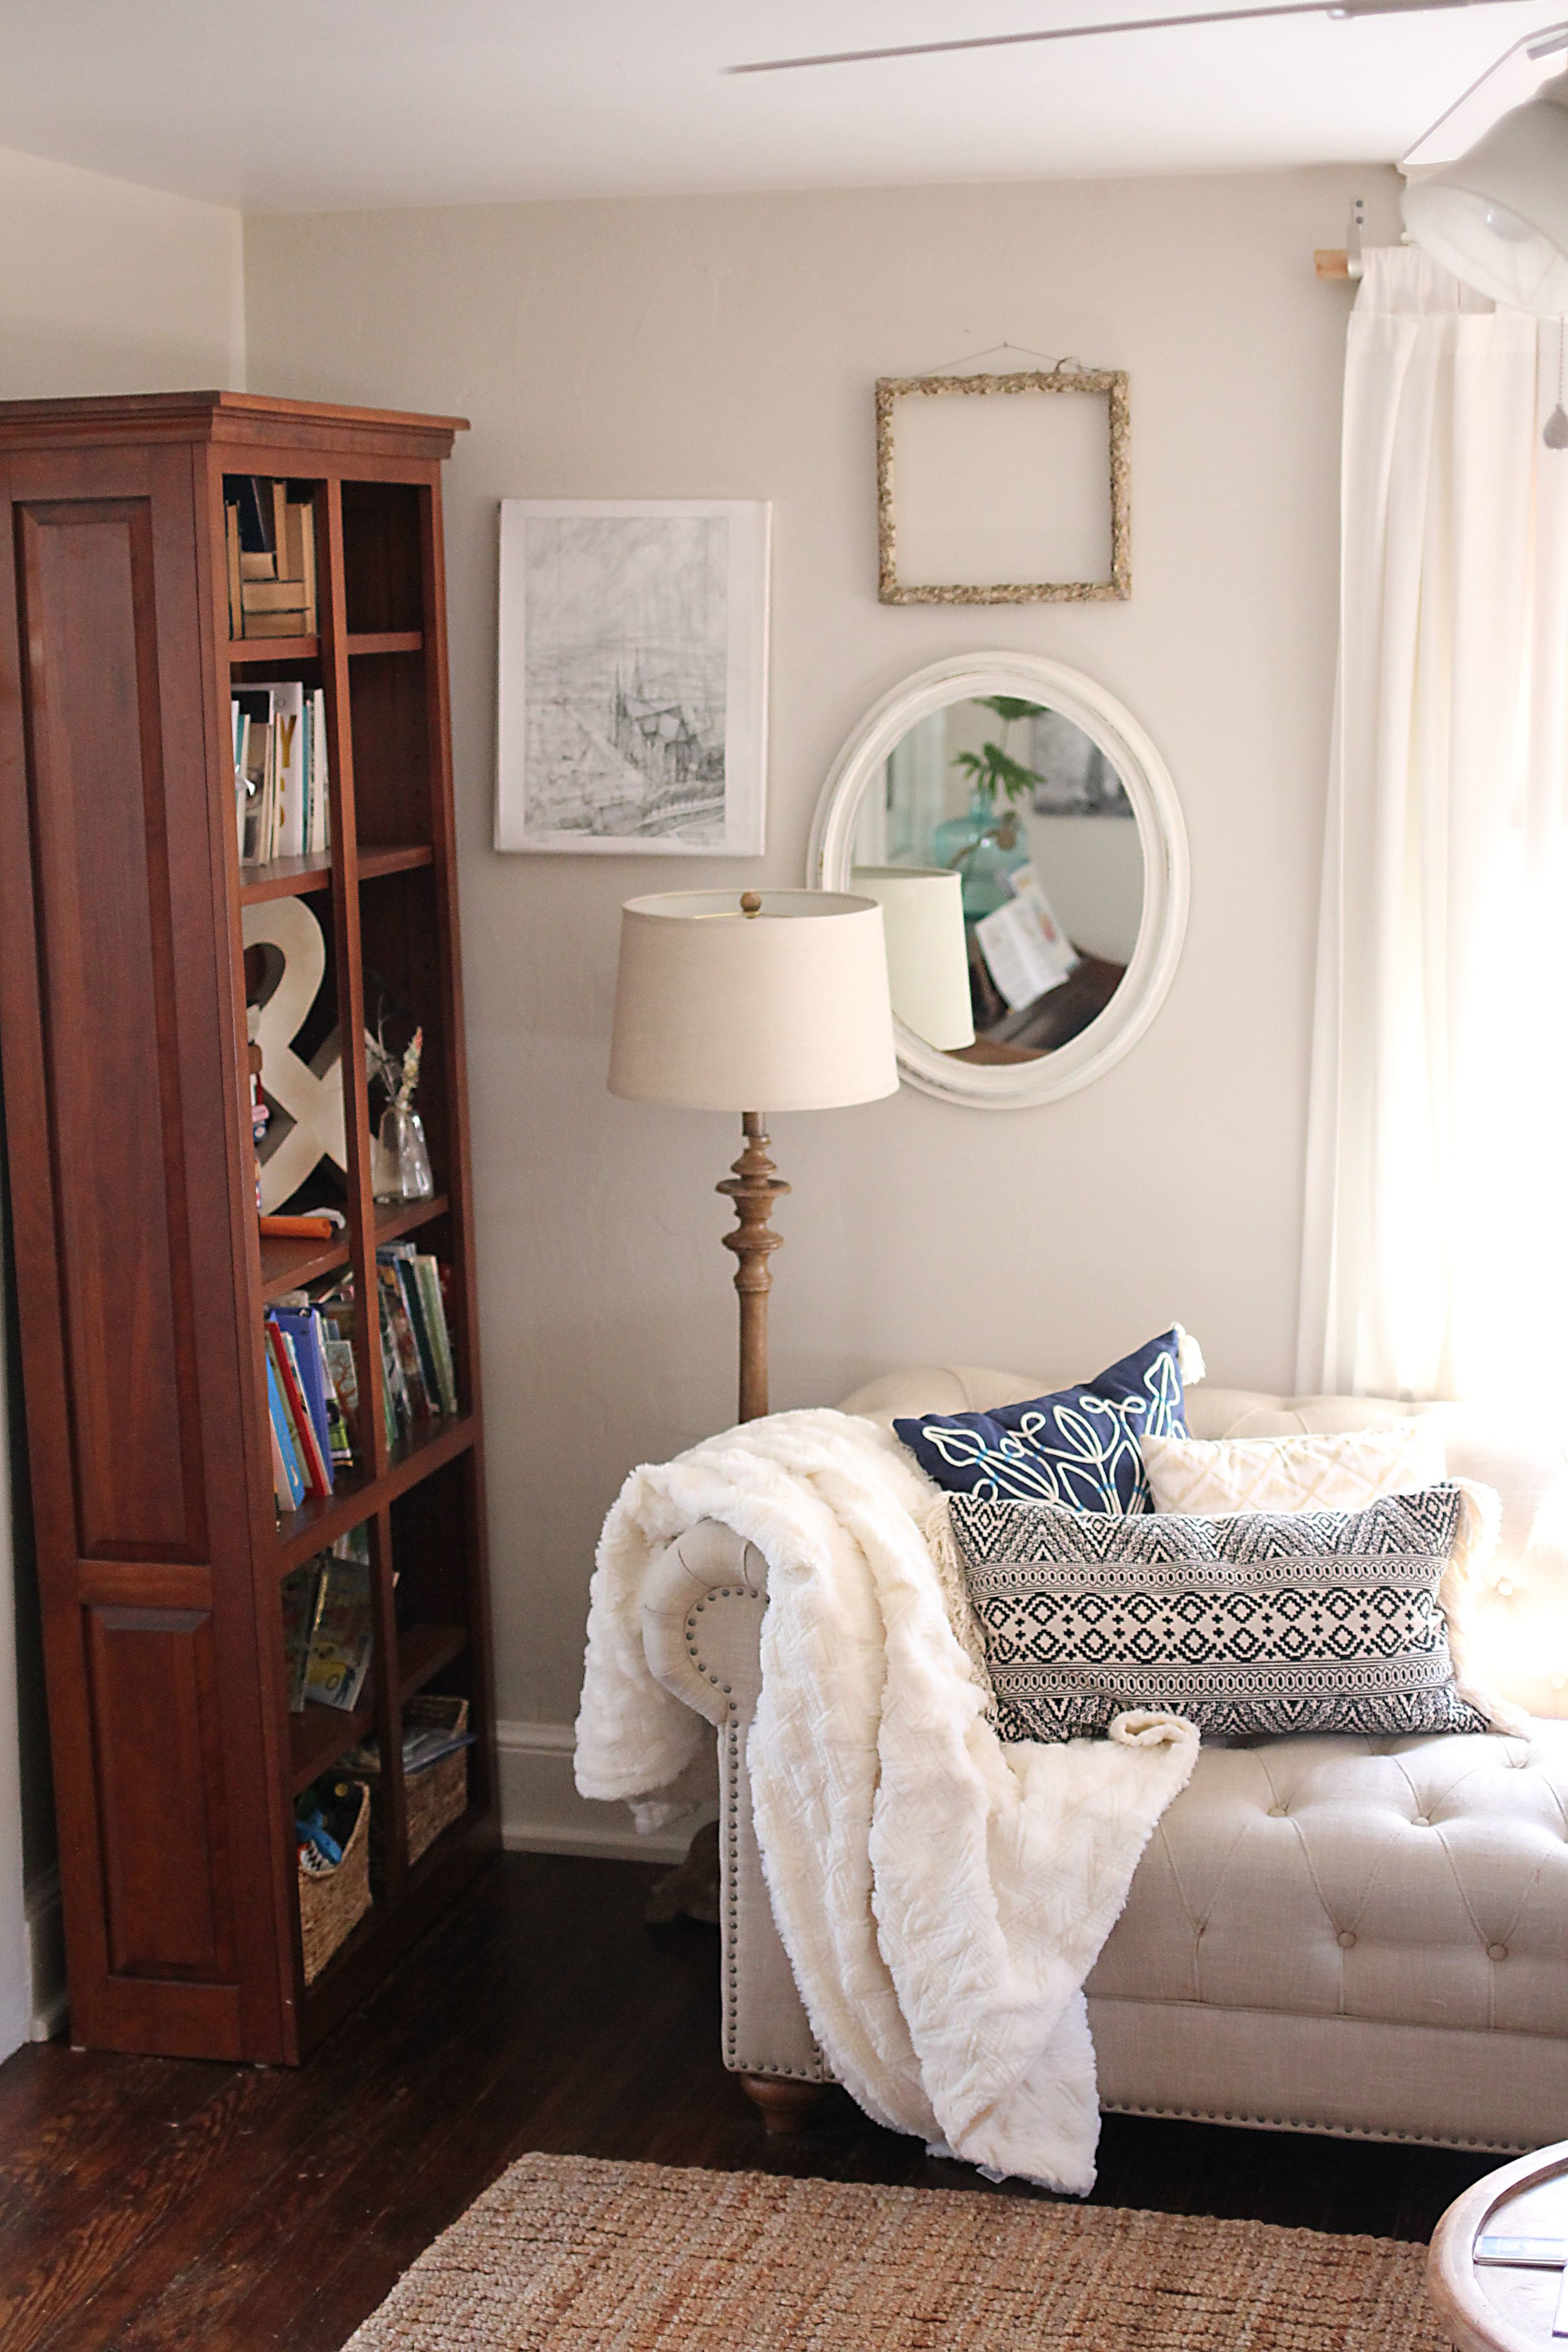 Textures help add warmth to this living space